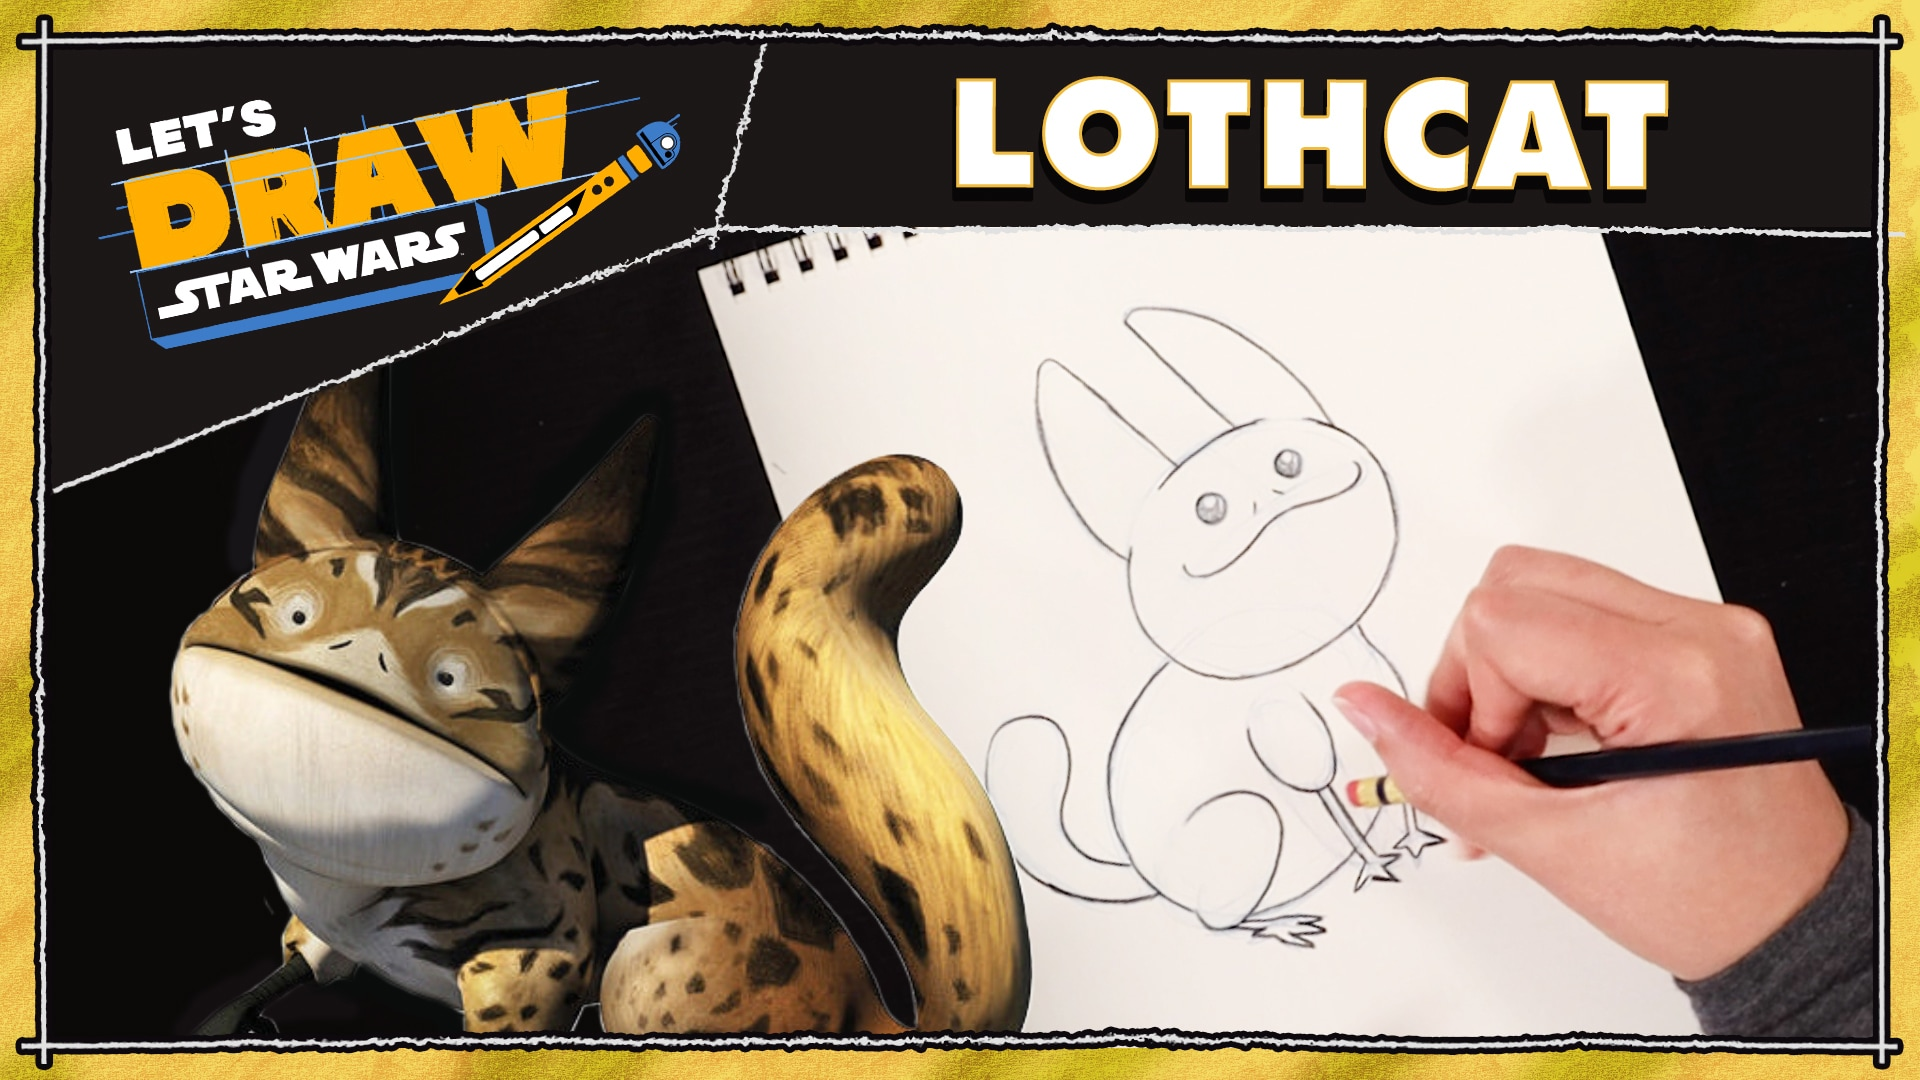 How to Draw a Loth-Cat | Let's Draw Star Wars